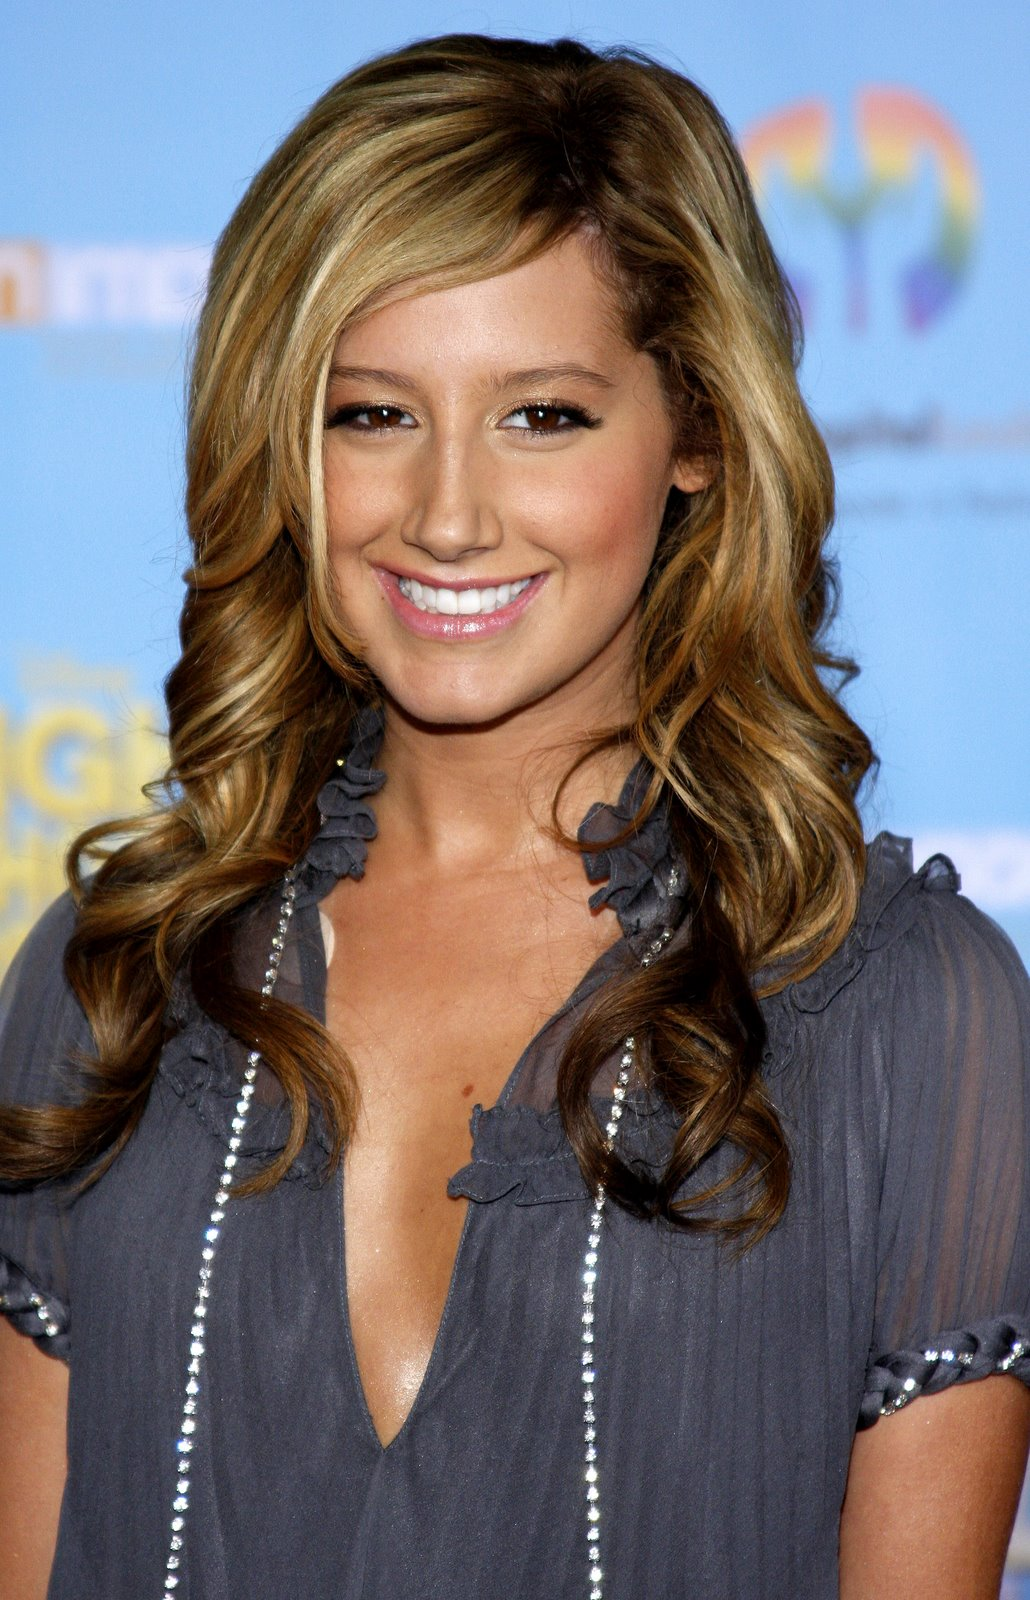 Latest Haircuts, Long Hairstyle 2013, Hairstyle 2013, New Long Hairstyle 2013, Celebrity Long Romance Hairstyles 2035